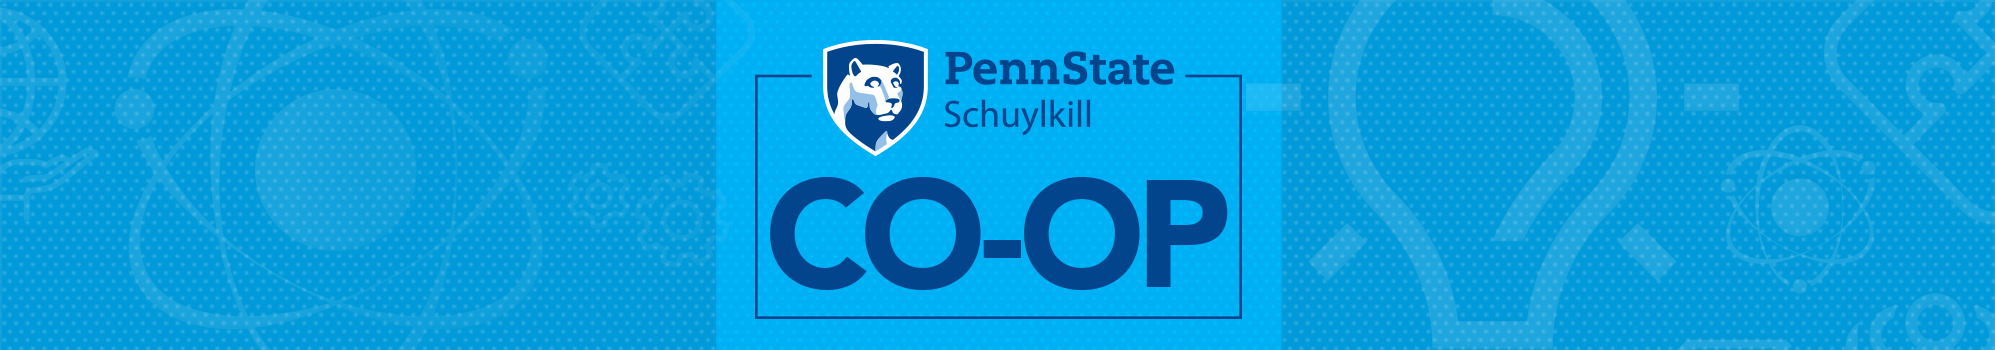 Penn State Schuylkill Co-Op logo and graphic